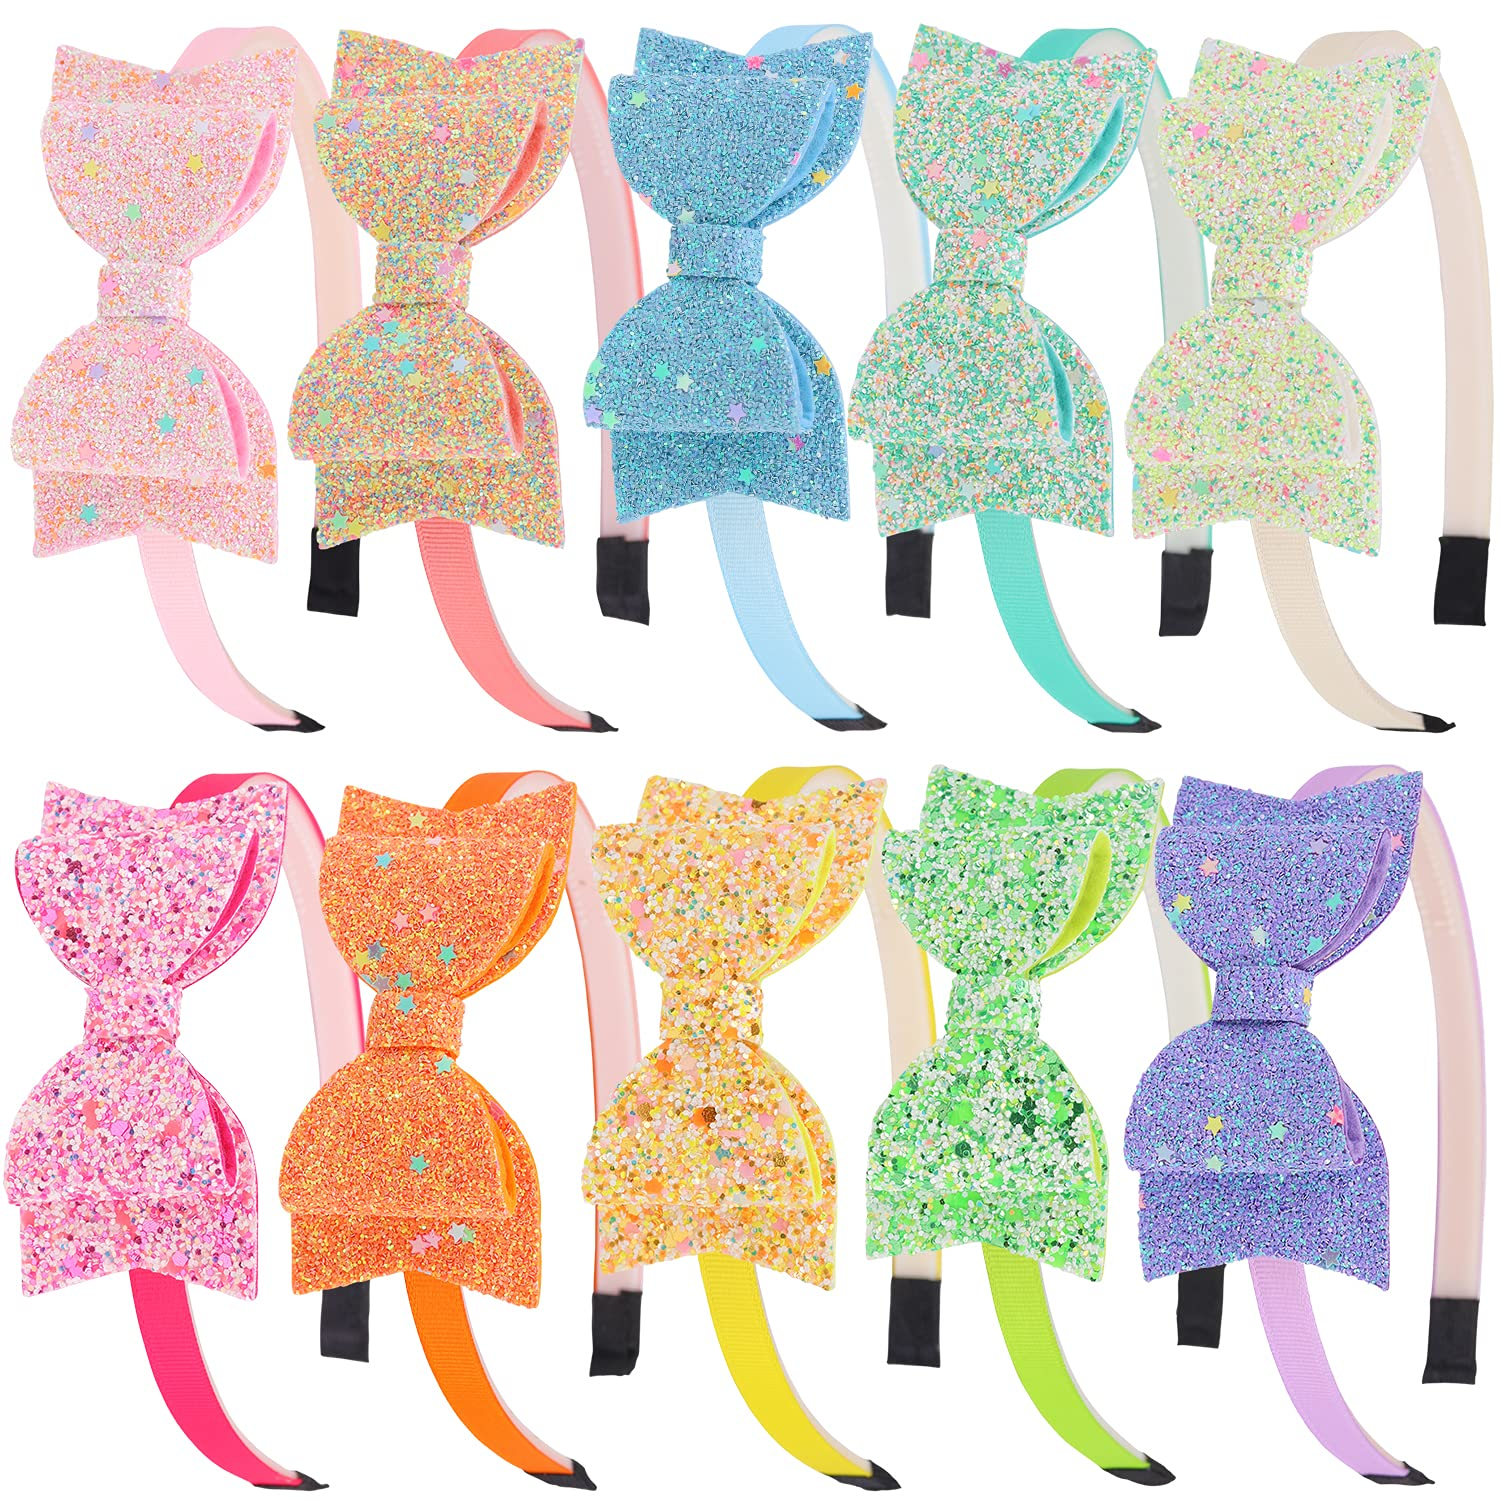 XIMA Bows Headbands For 2021new shipping Recommendation free Girls Sequin Gli inch Kids 3.5